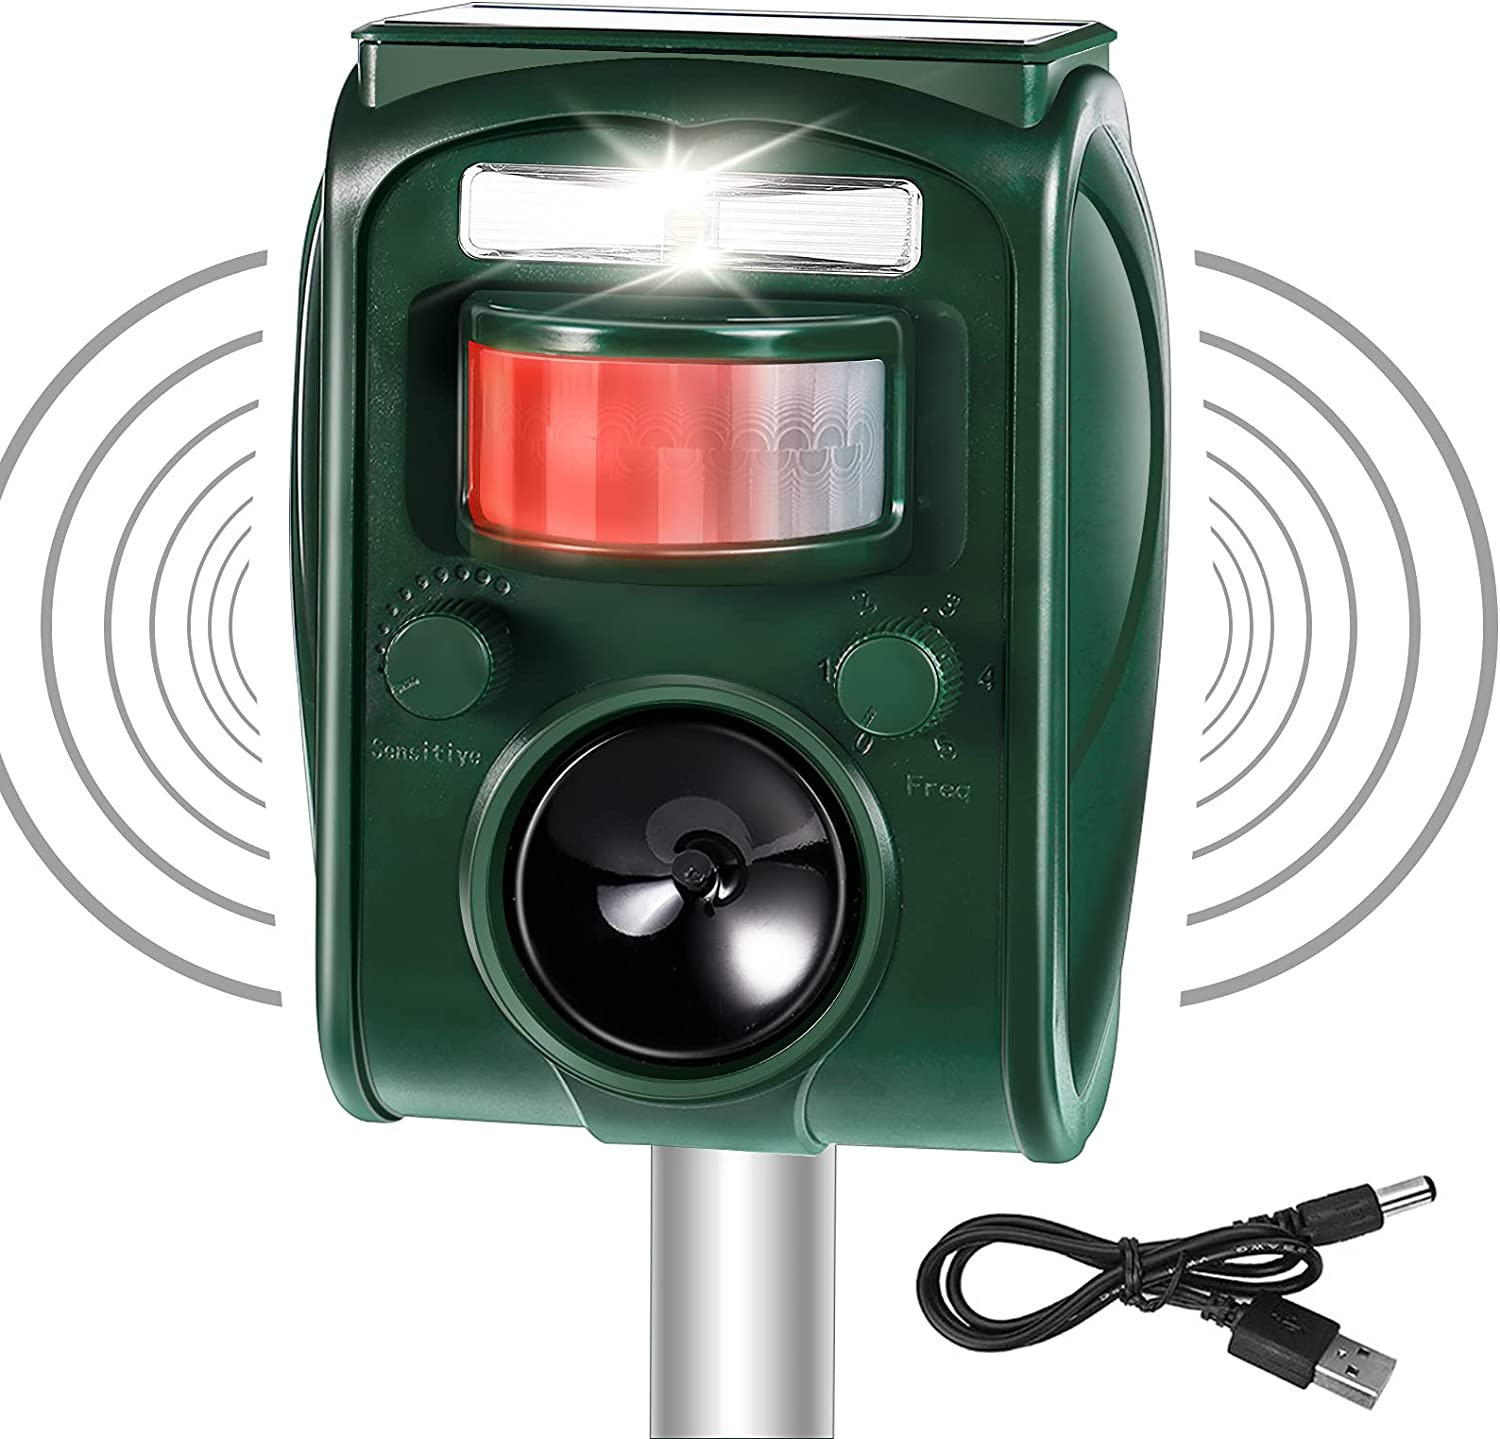 TALLANT Ultrasonic Outdoor cat Animal Repeller Solar Animal Repellent with Motion Activated and Flashing LED Lights Waterproof Repeller for Dogs, Racoon, Deer, Birds, Skunks, Squirrels, Rabbit, Fox